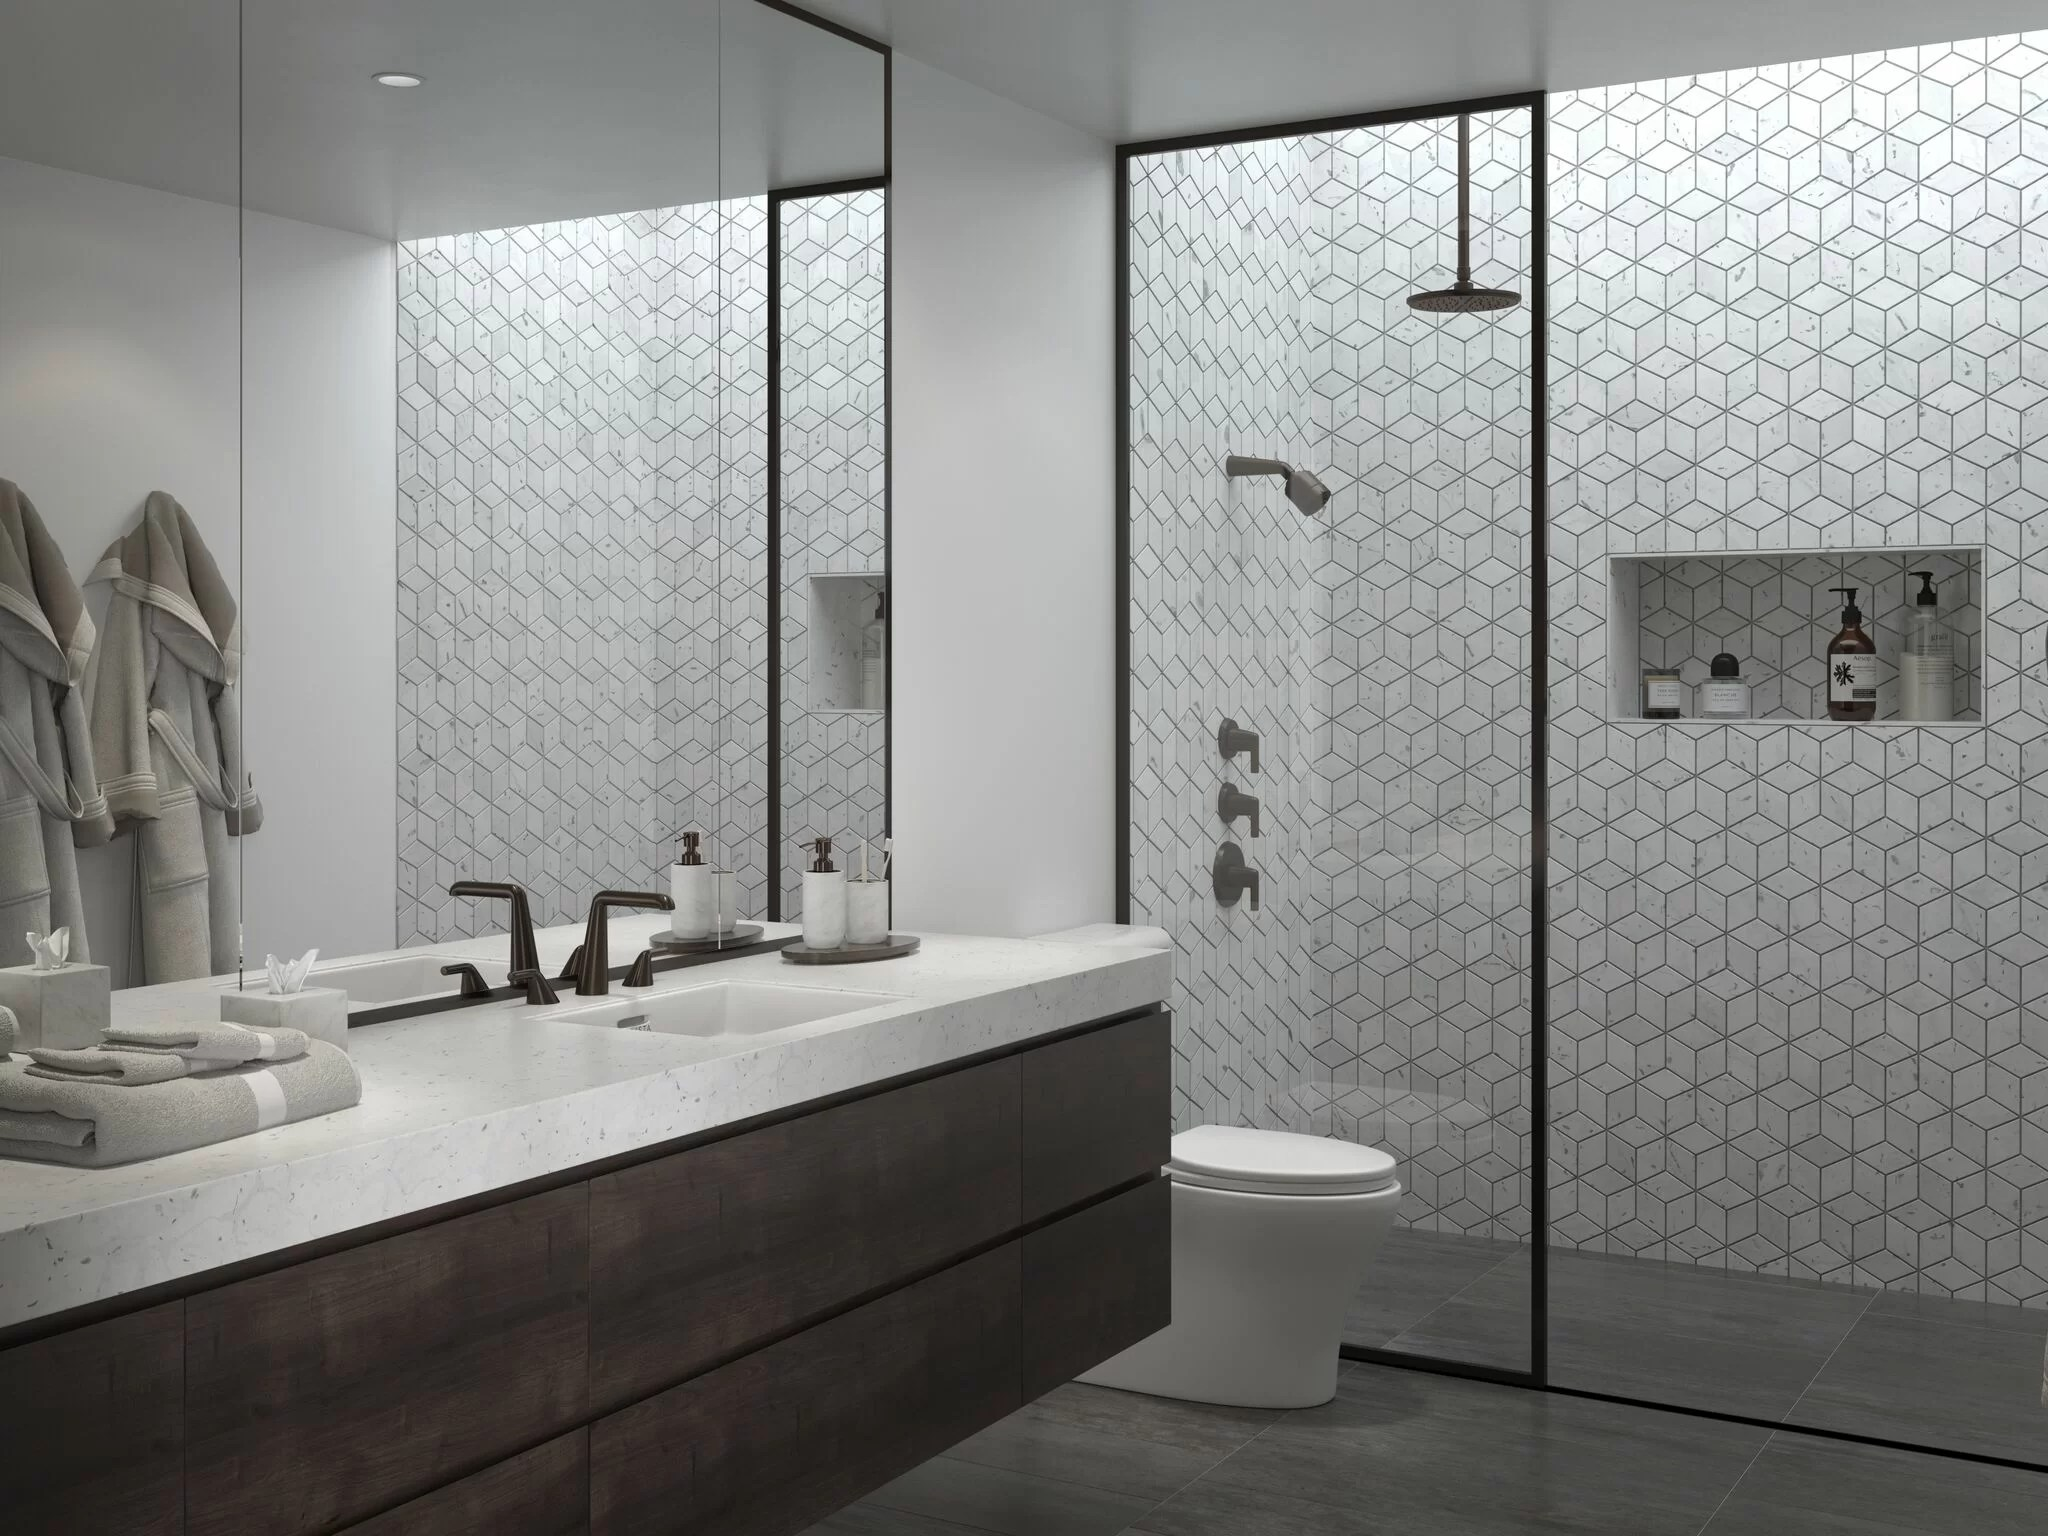 14 Simply Stunning Bathroom Shower Ideas With Photos Wayfair